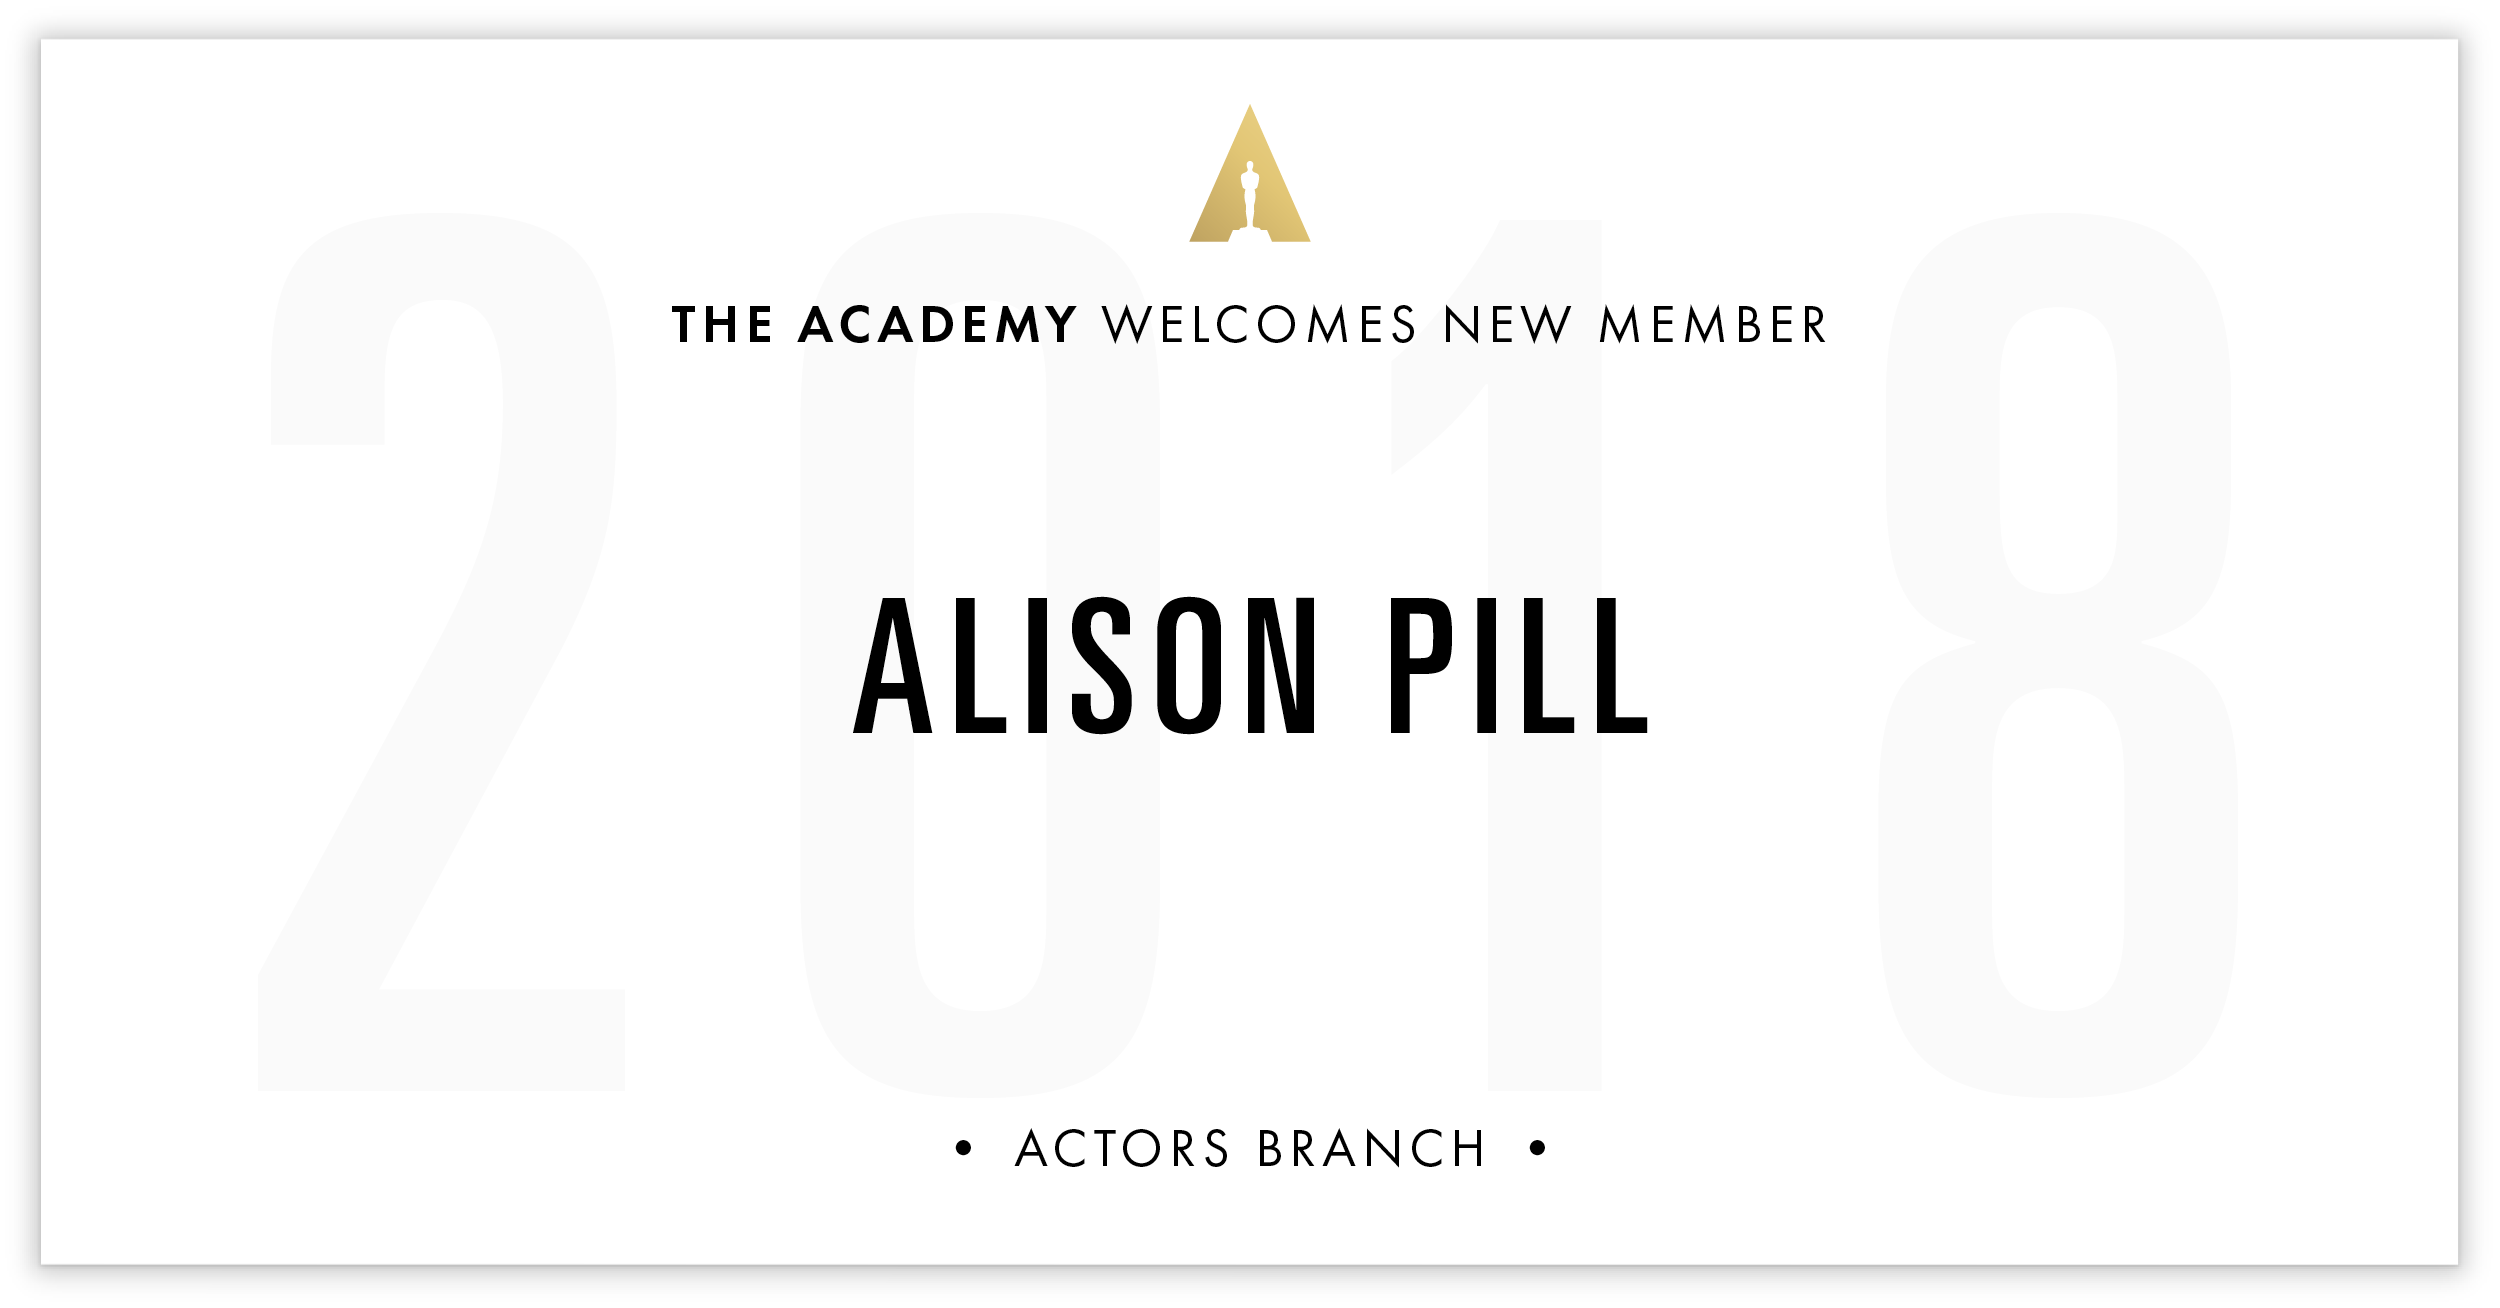 Alison Pill is invited!